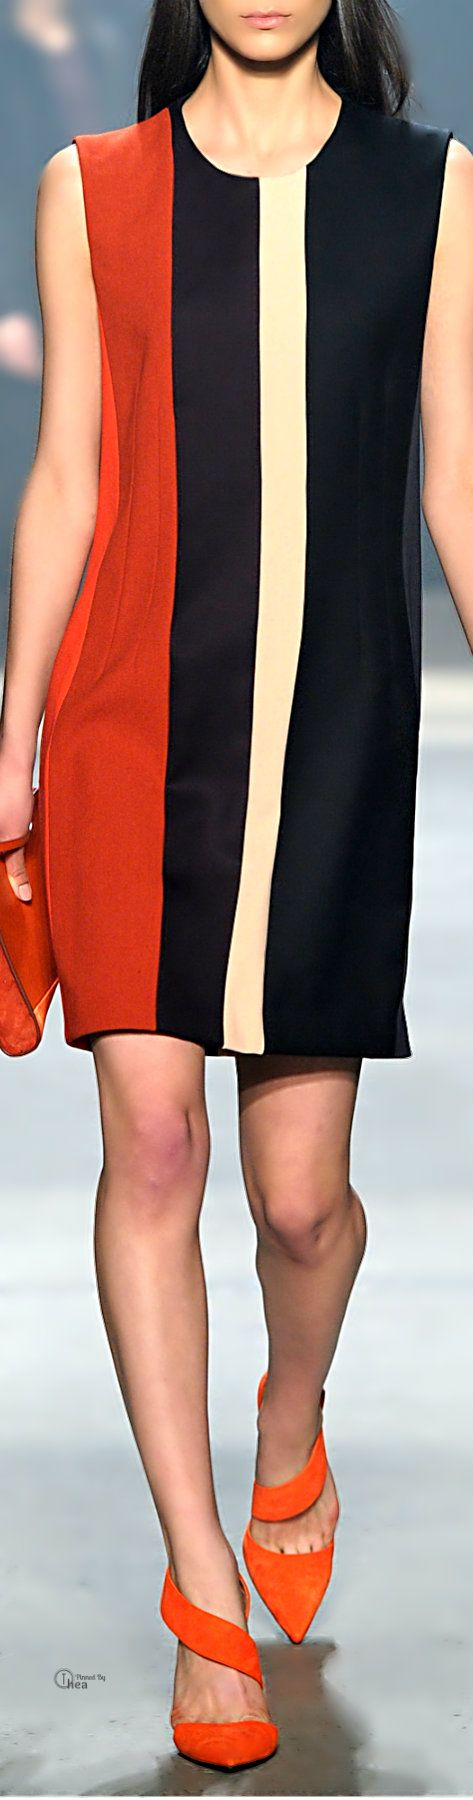 Narciso Rodriguez ● Fall 2014, Wool Crepe Dress. Simple lines with a touch of color, but too short for me. #21 steps style course